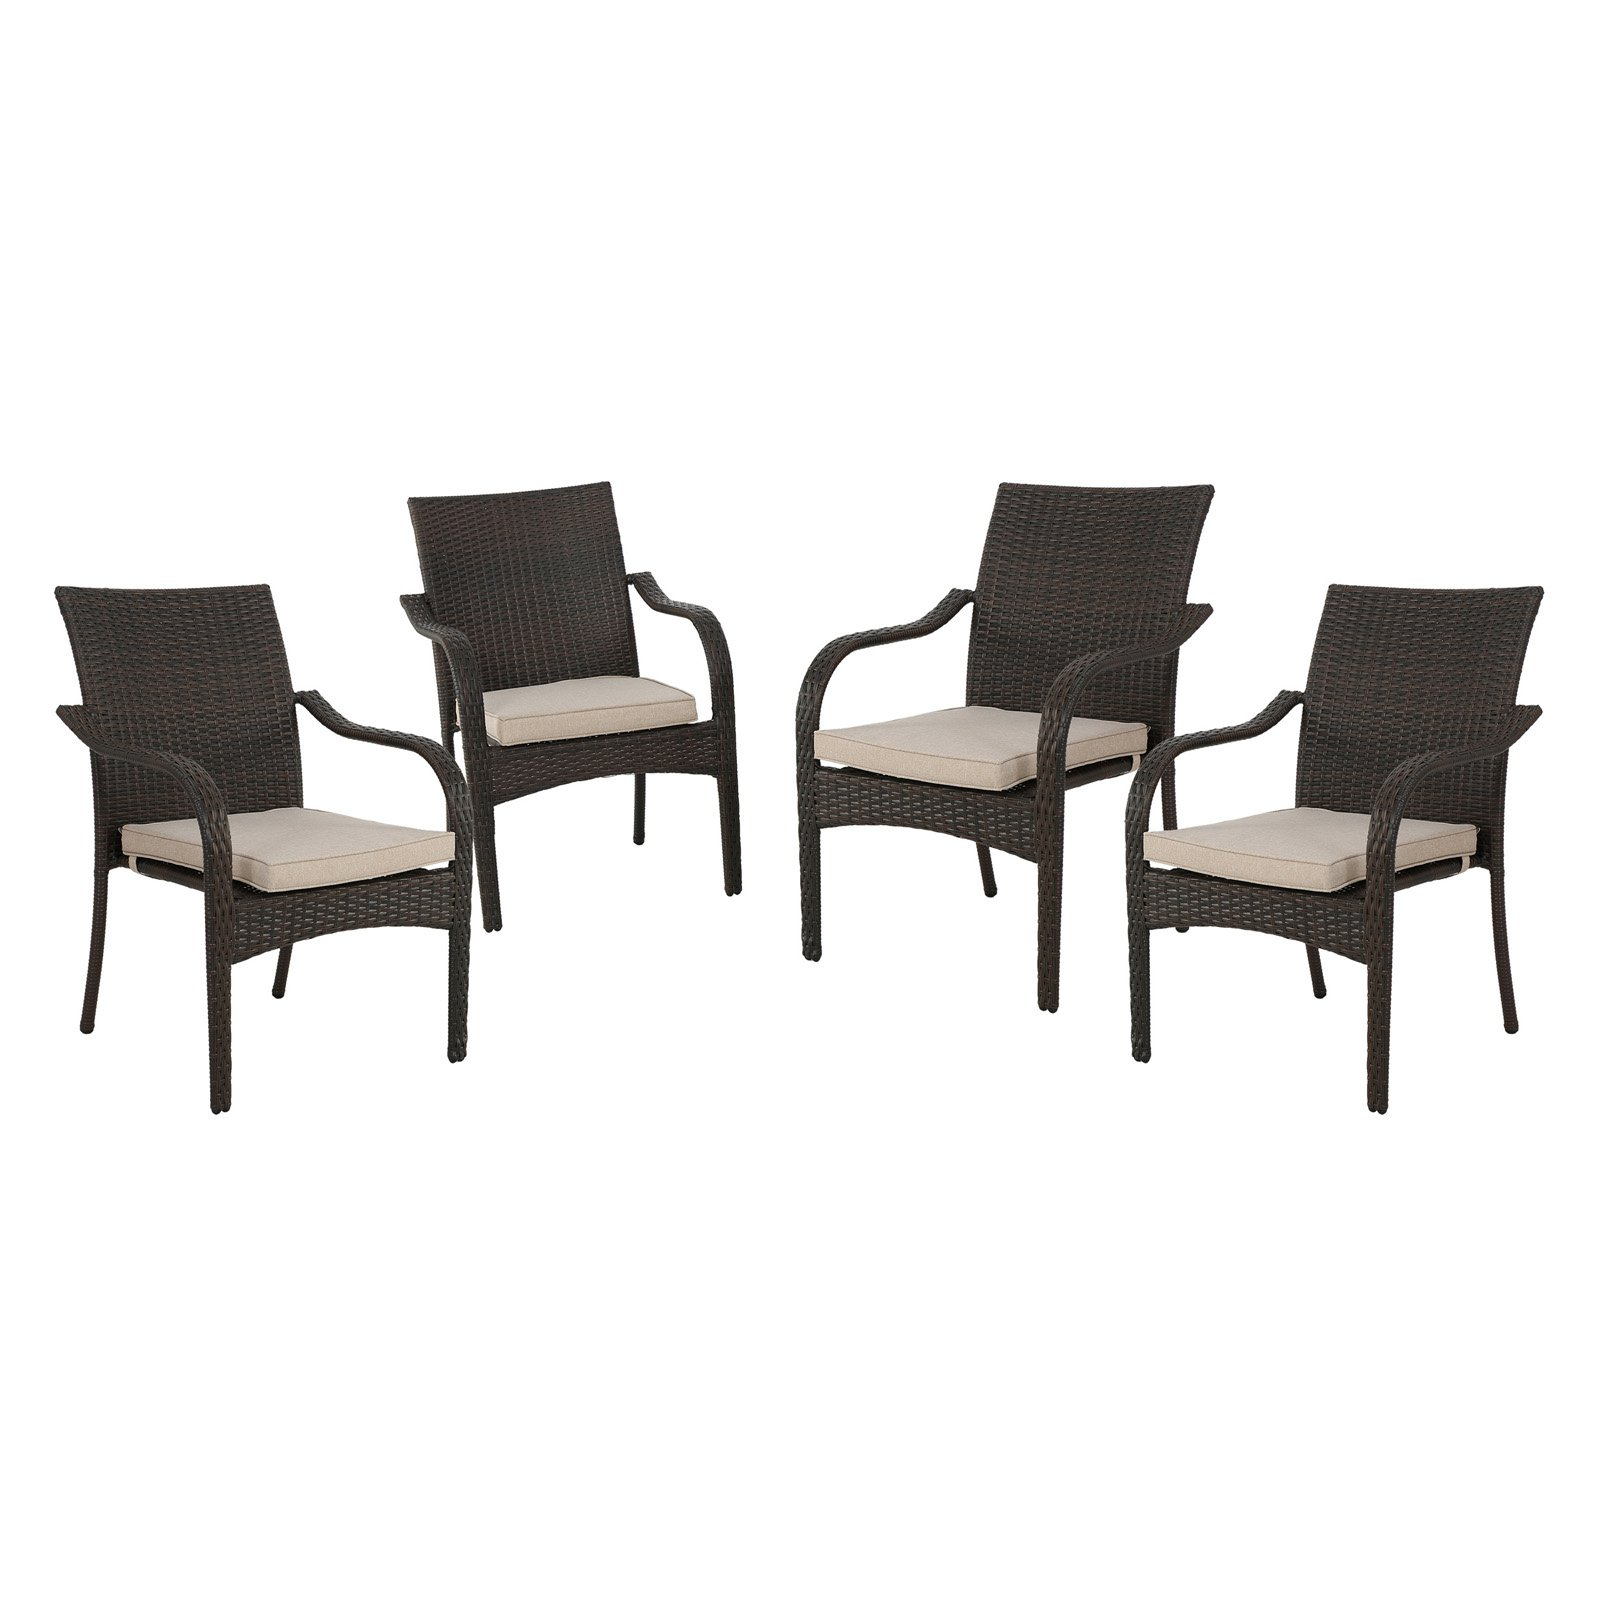 Solomon Wicker Stacking Chairs - Set of 4